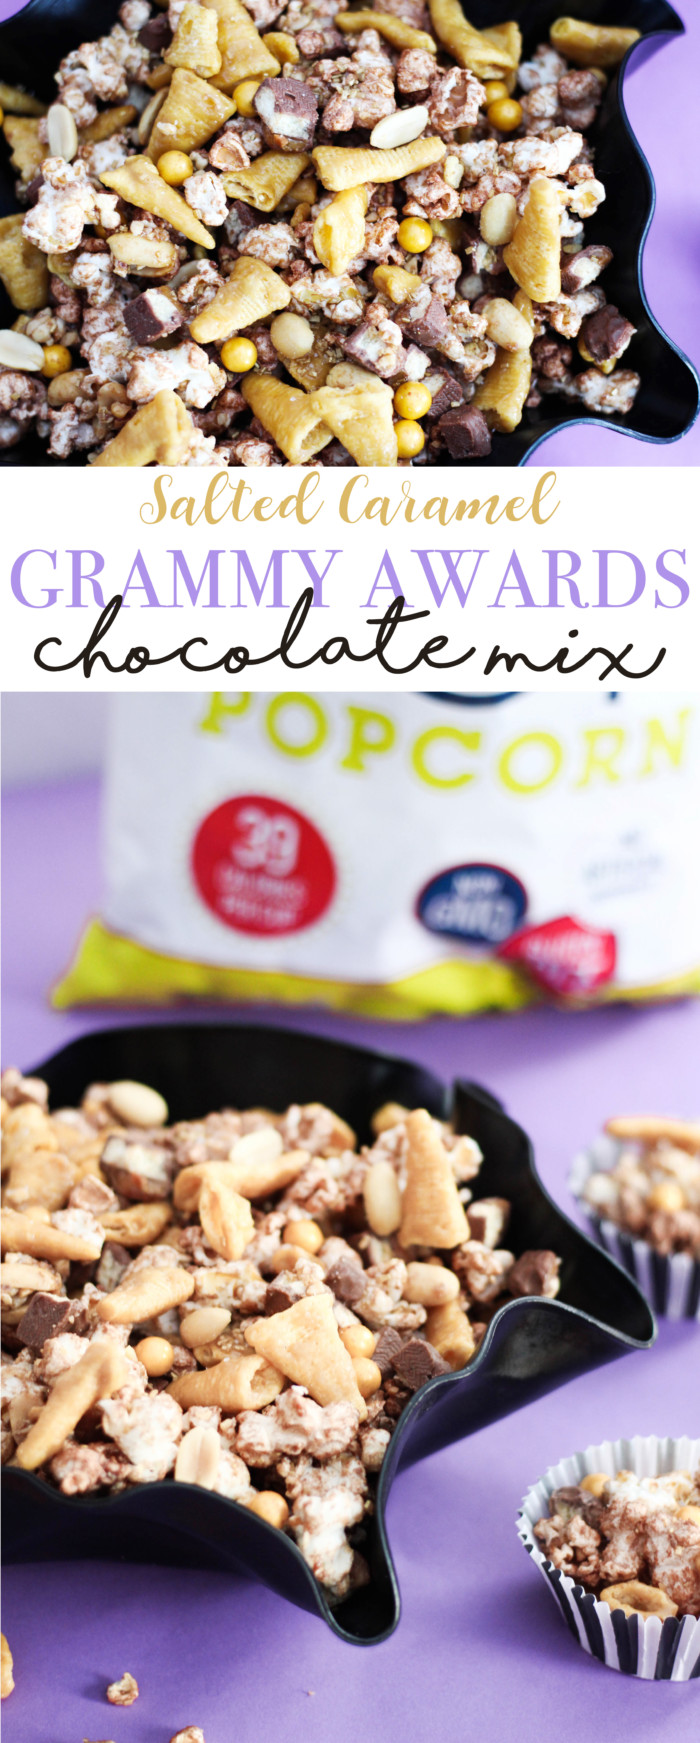 """Salty & sweet chocolate caramel snack mix featuring SkinnyPop and little """"gramophones"""", perfect for a Grammy Awards watching party!"""